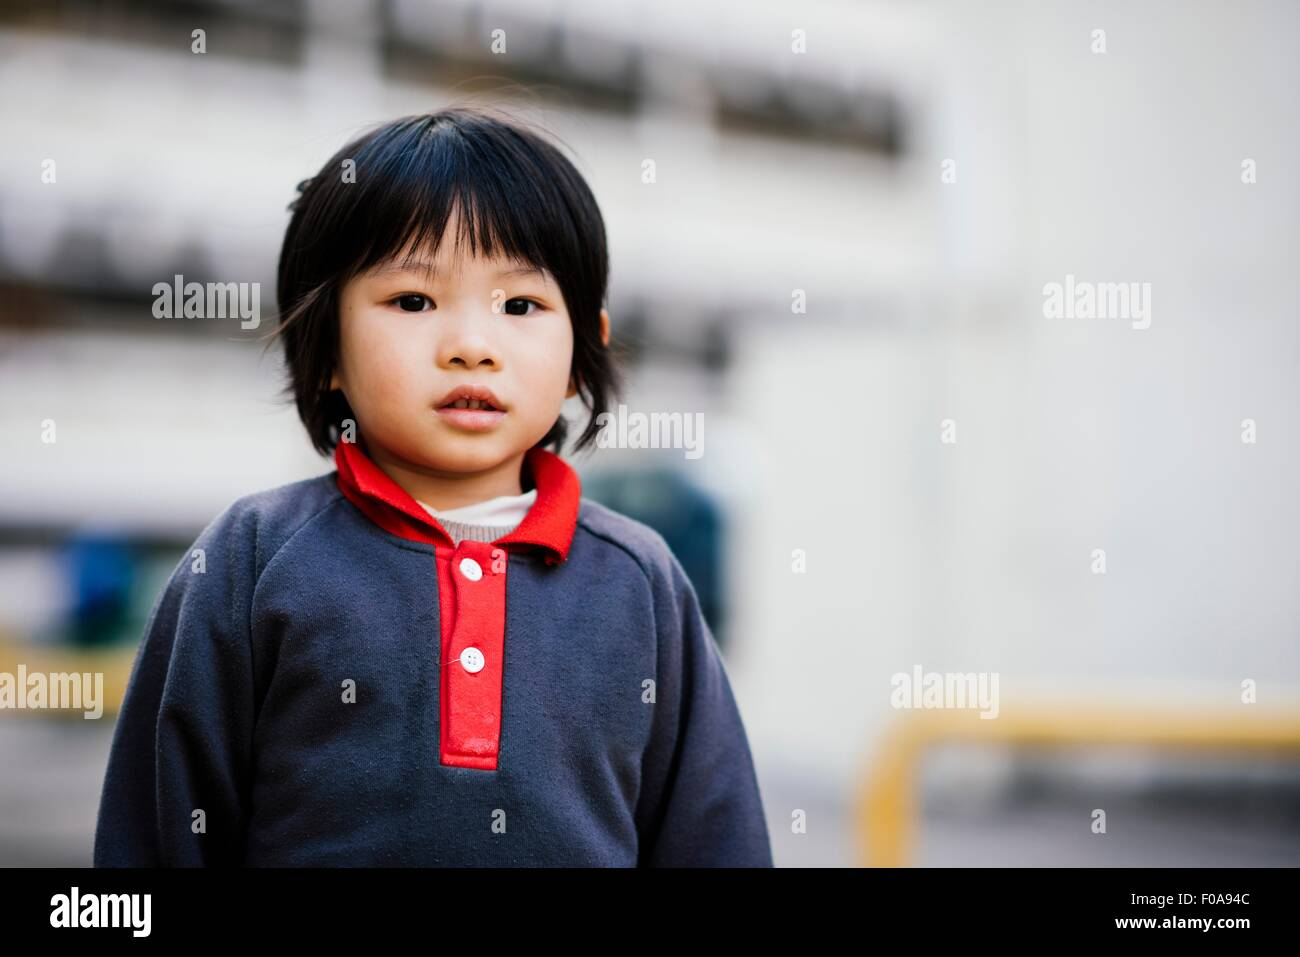 Portrait of boy looking at camera - Stock Image